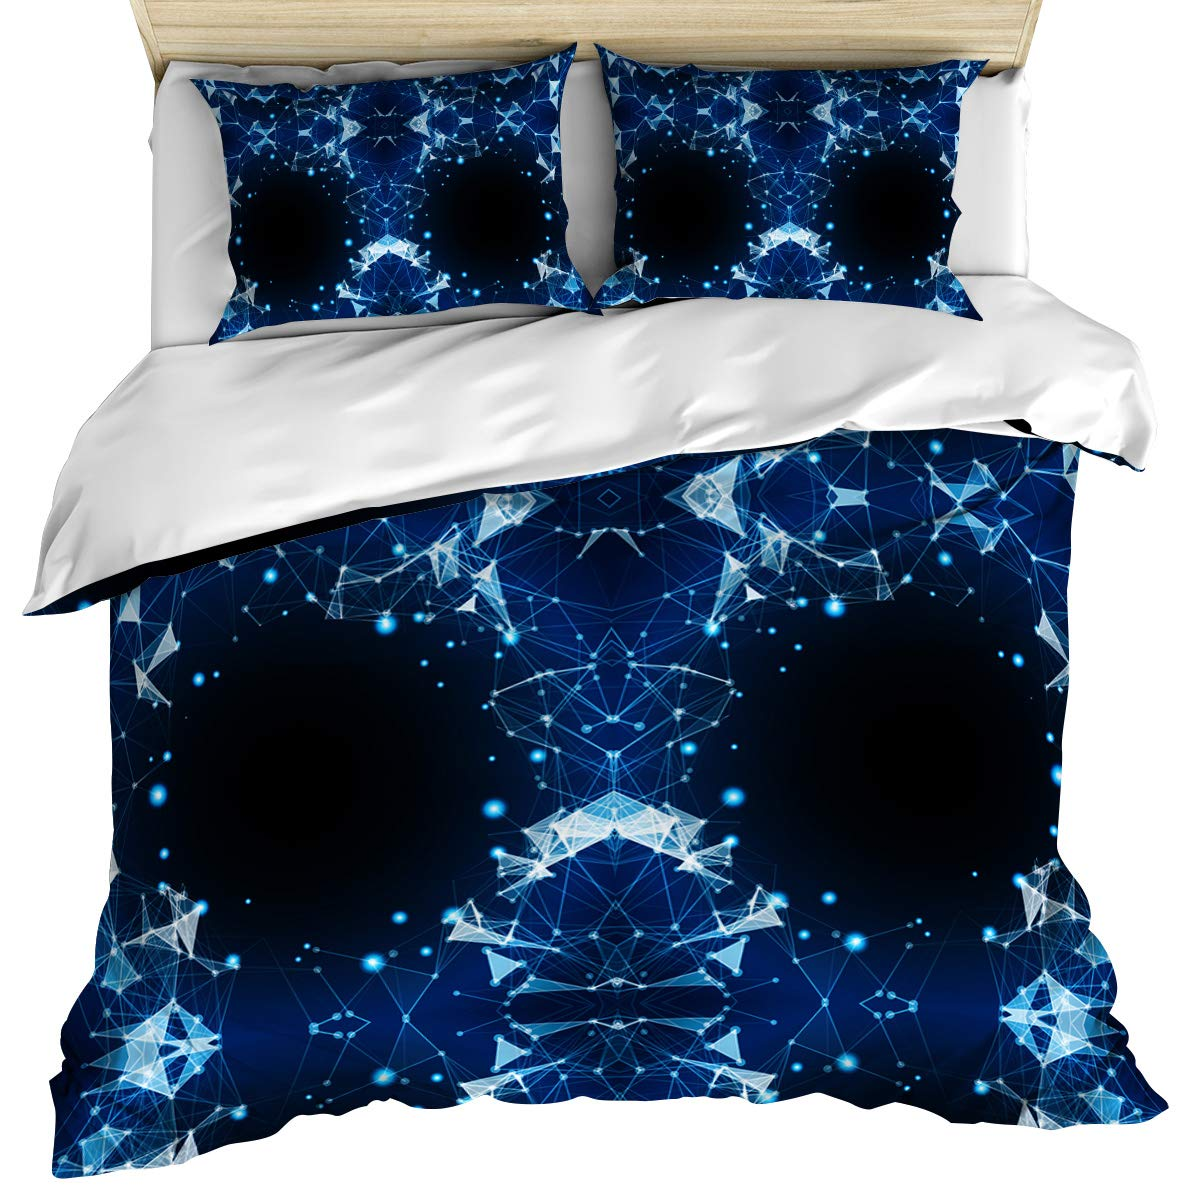 Luxury Microfiber 3 Piece Bedding Set Twin Size Geometric Monochrome Hipster Line with Polka Dot 3PCS Zippered Duvet Cover Comforter Cover Set with Quilt Cover Pillow Cases for Kids/Teens/Adults